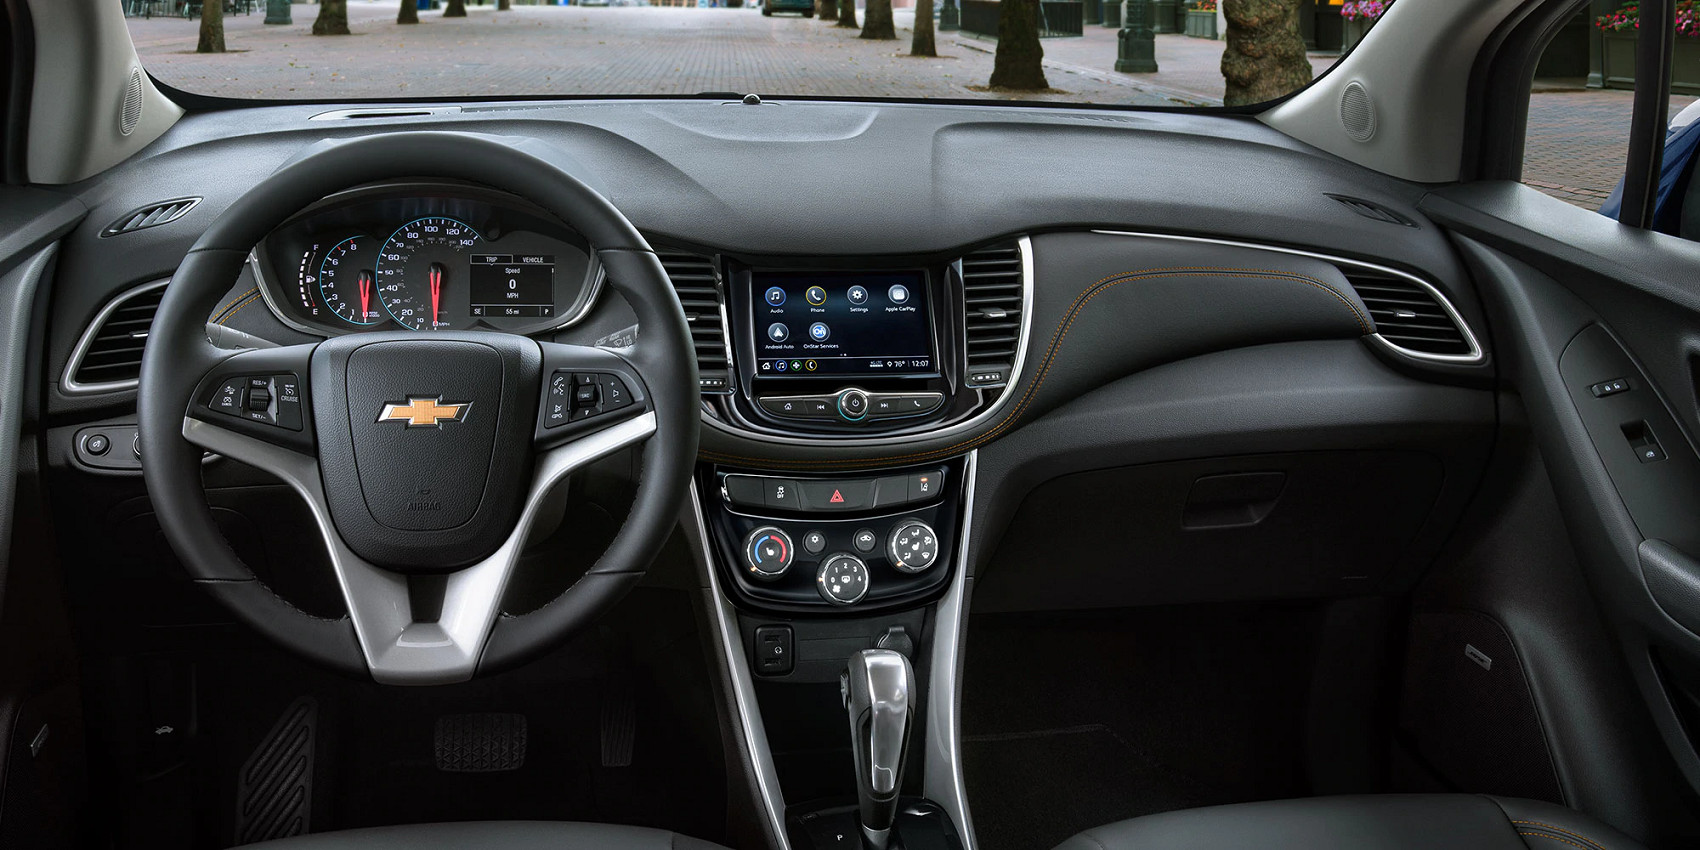 Secure Cabin of the 2020 Chevy Trax